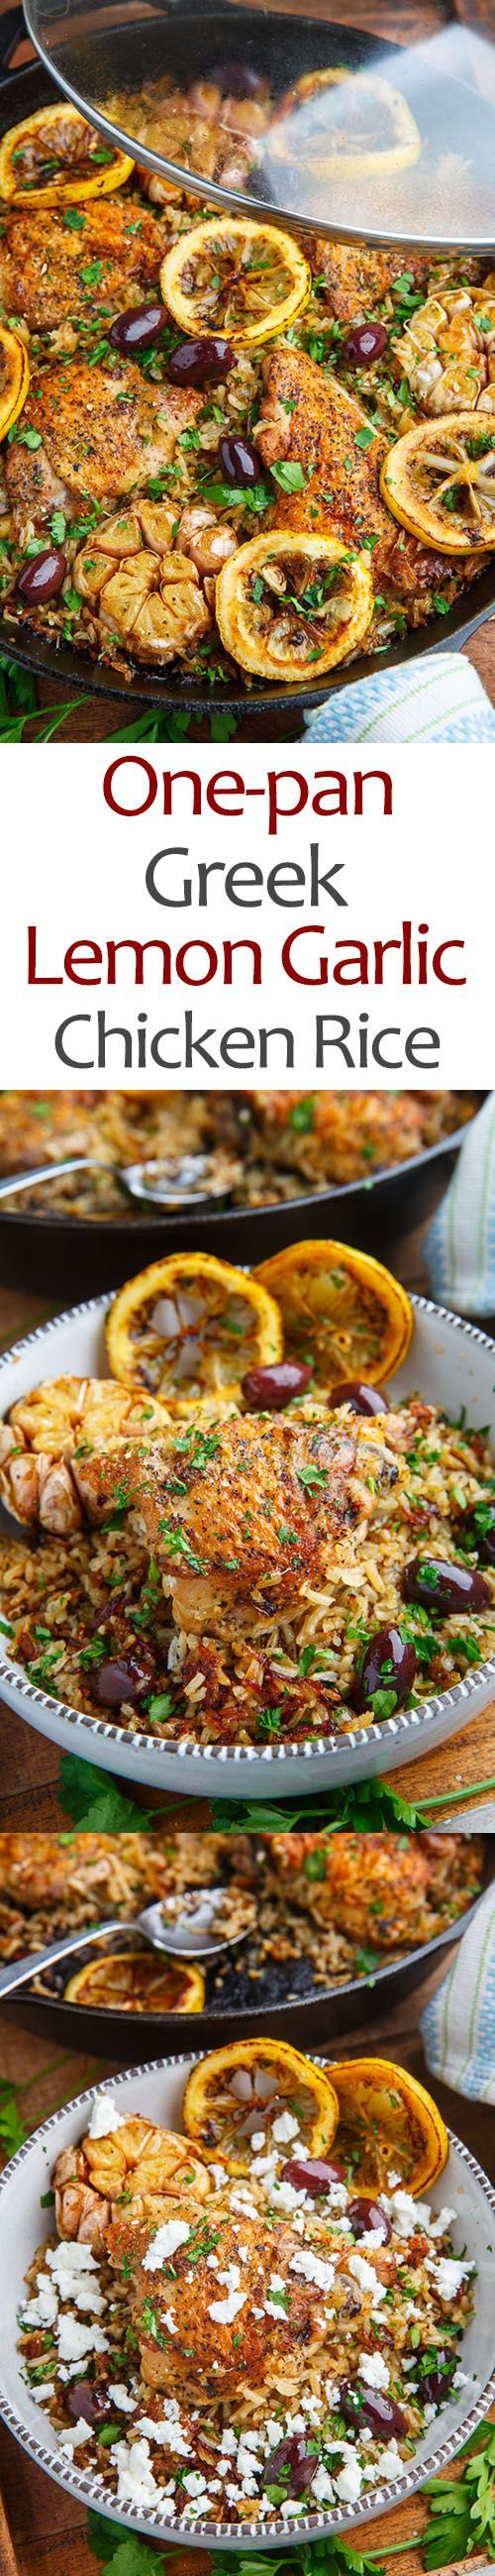 One Pan Greek Lemon Chicken (use veggie alternative)  Rice with Roast Garlic